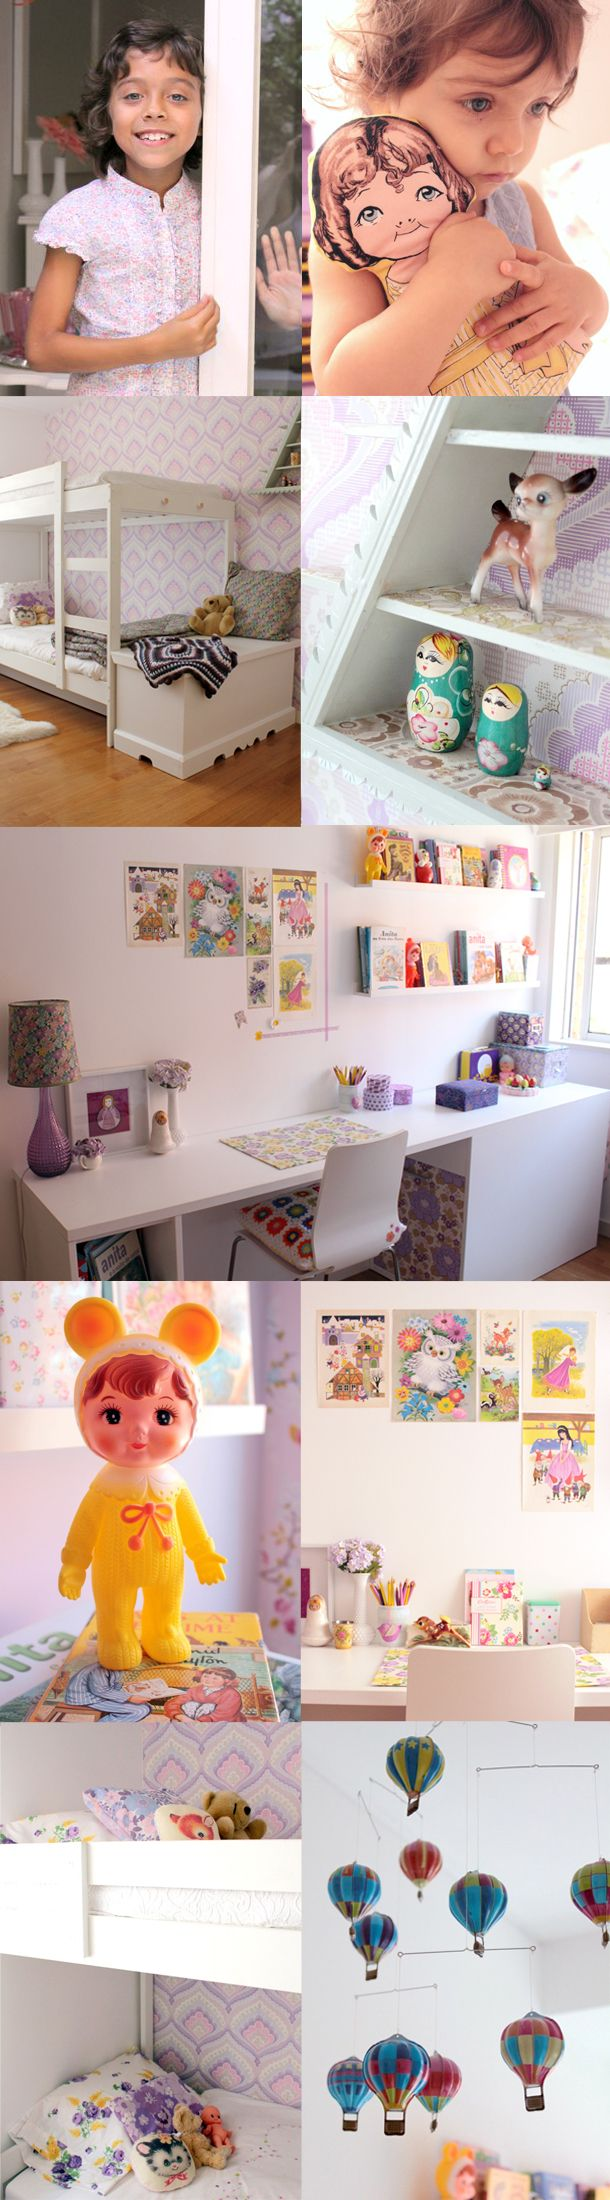 colorful clean kids space- LOVE it! Swedish vintage awesomeness- I especially like the desk area